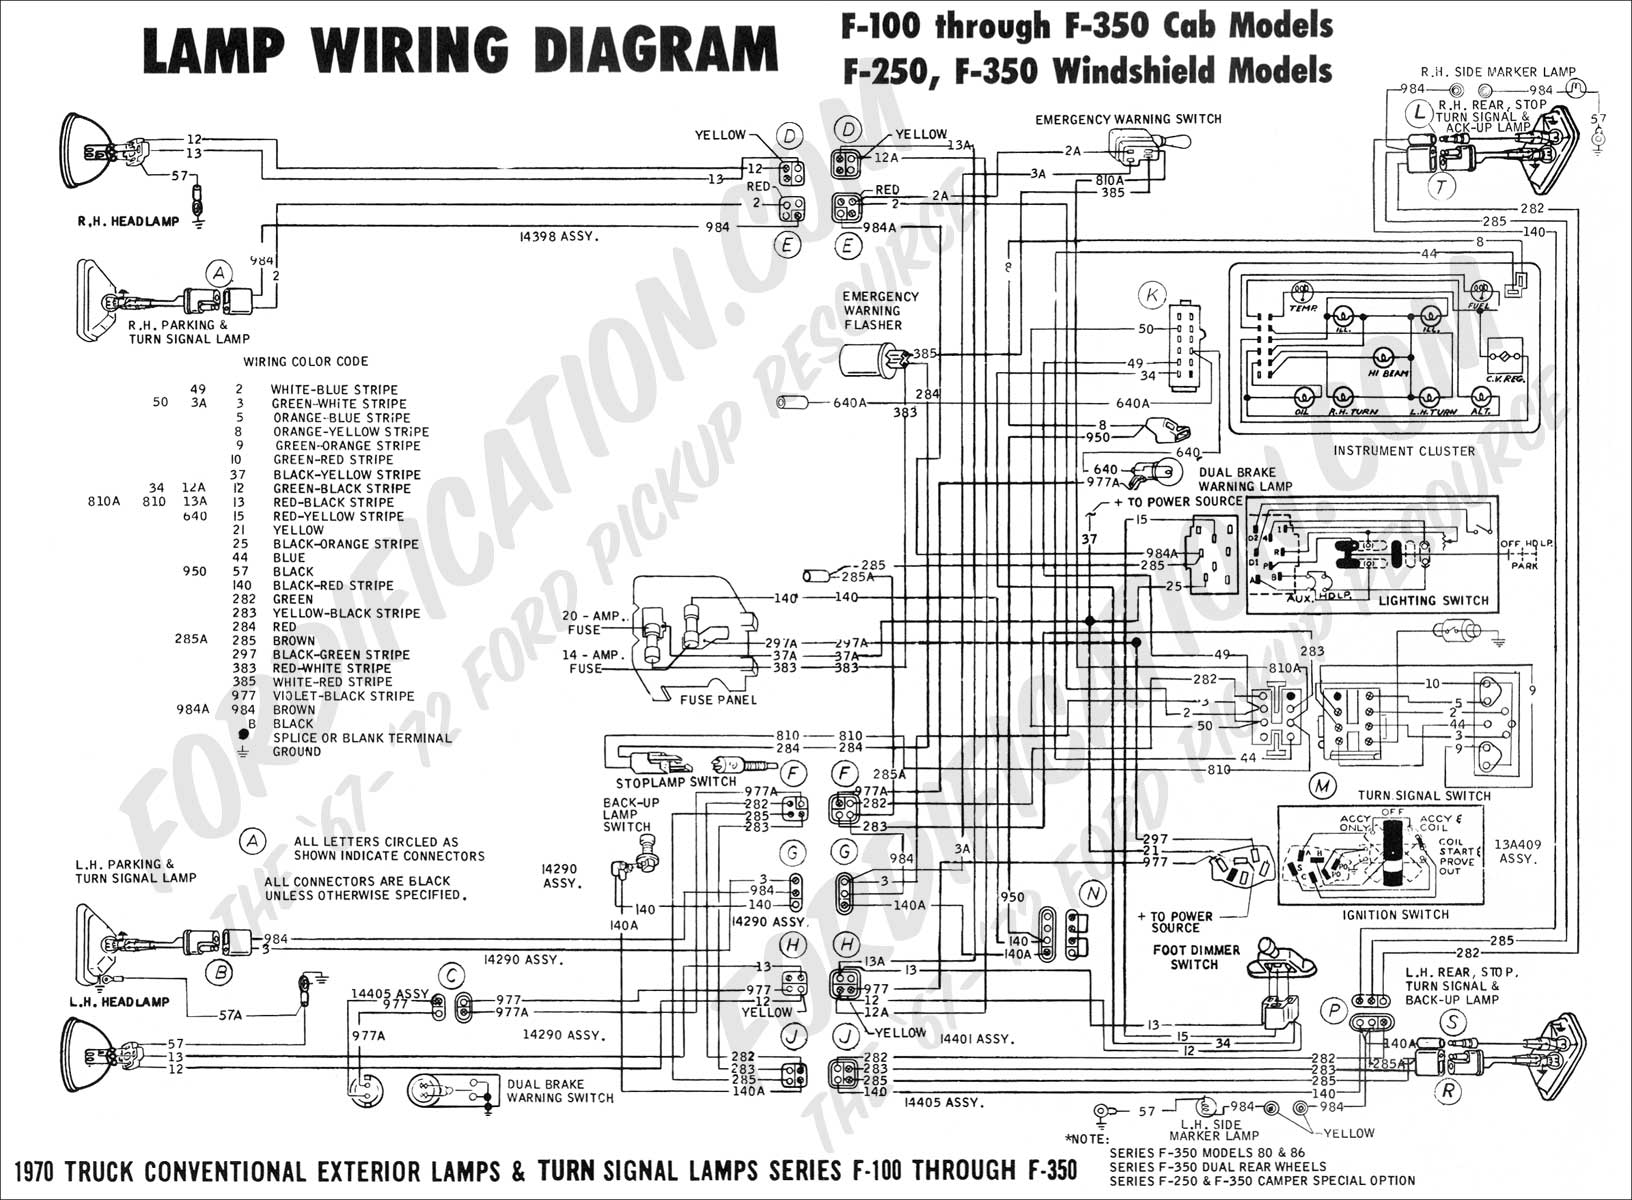 79 Ford F700 Wiring Diagram Box Wiring Diagram Ford Taurus Wiring Schematic  Ford F700 Alternator Wiring Schematic